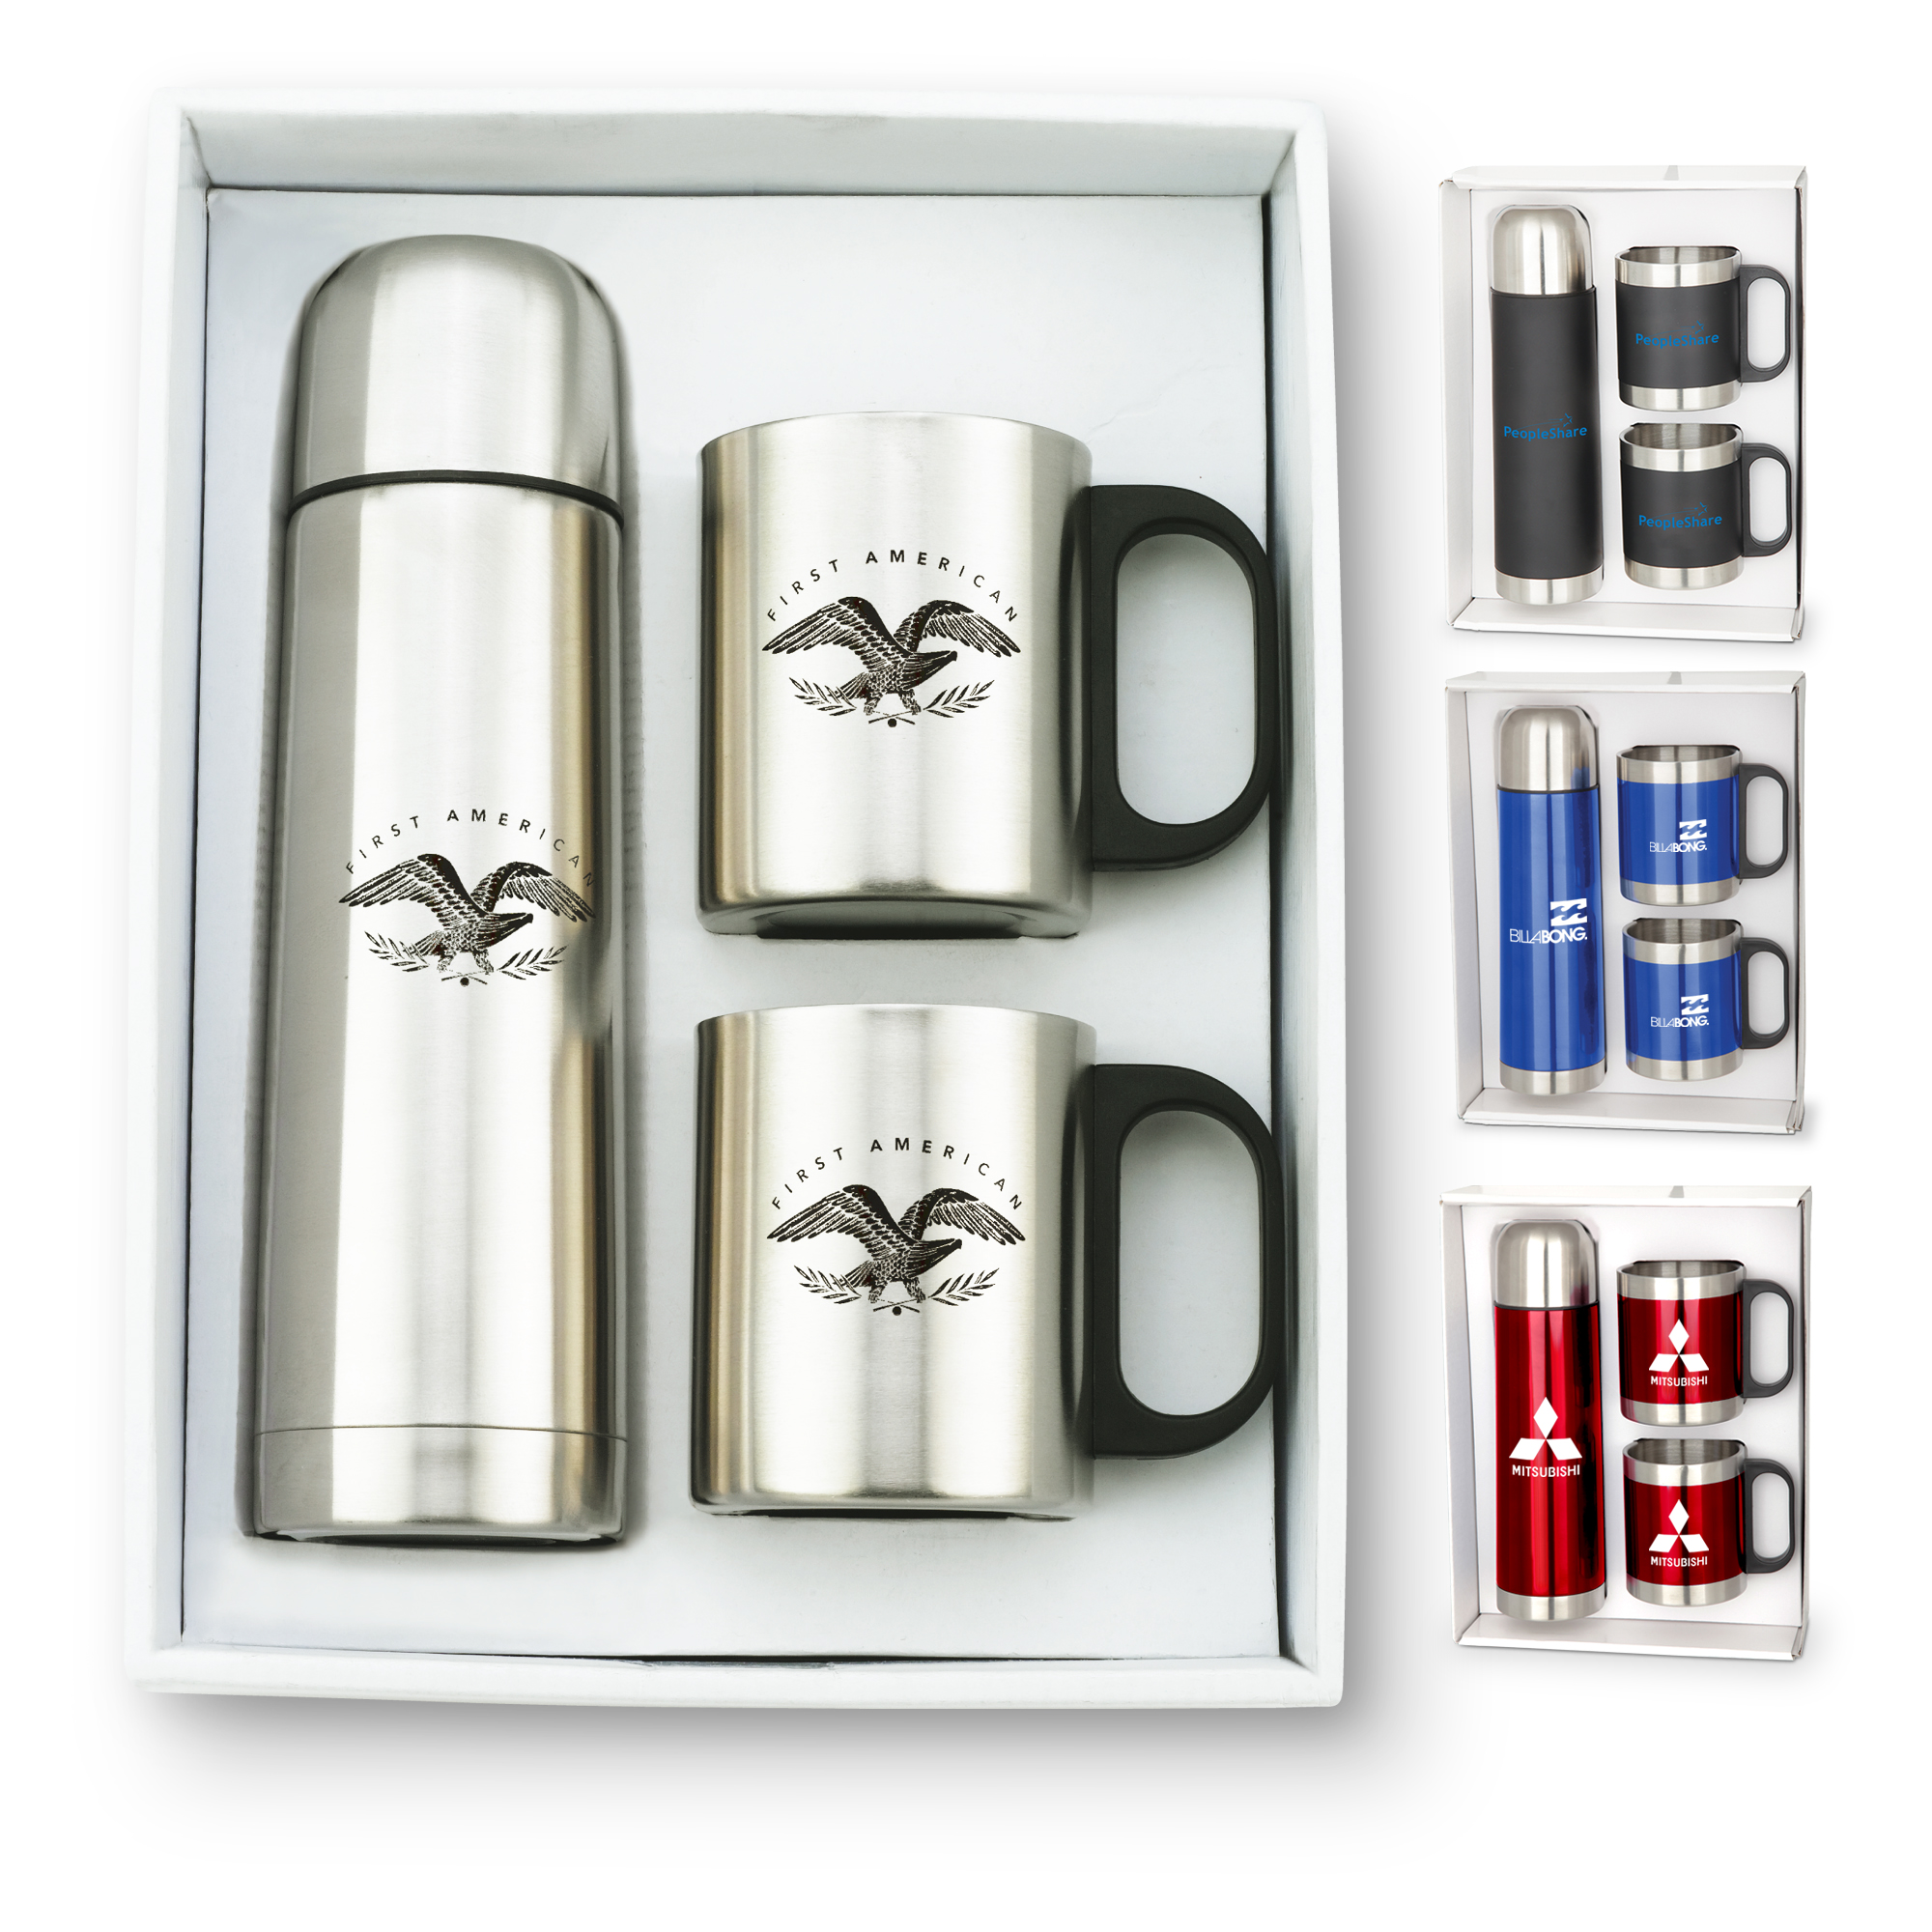 GT-53 9oz Stainless Steel Mugs & 16.5oz Thermos Giftset